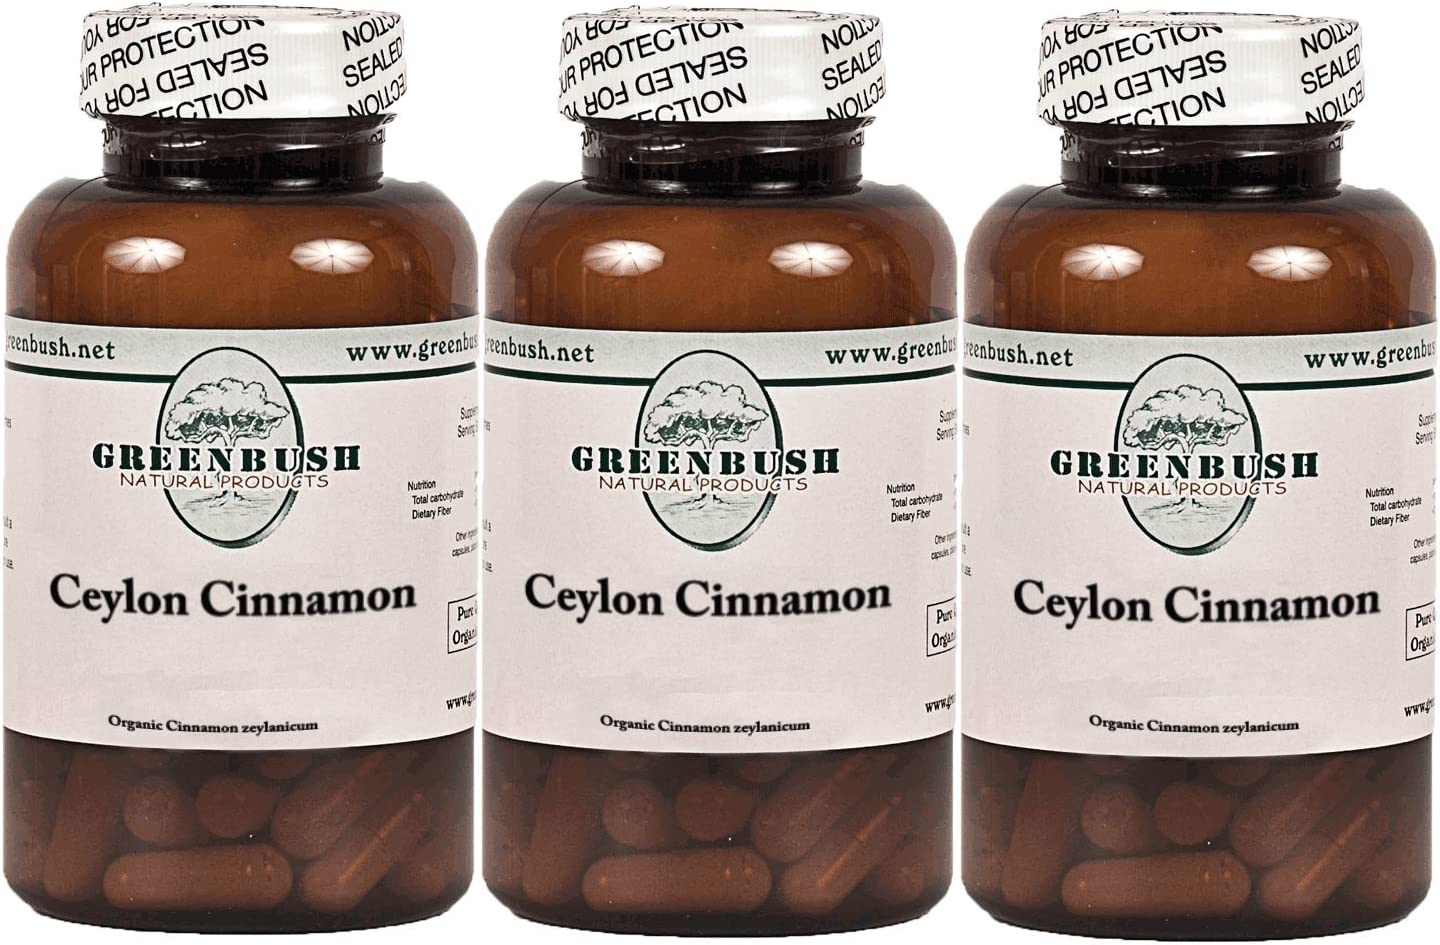 3 Bottle Pack Natural Ceylon Cinnamon 100 Vegetarian Capsules 575mg True Cinnamon for Blood Sugar, Abdominal Fat, Cholesterol, Urinary Tract, Digestive Health, Pain Management and Mental Function.